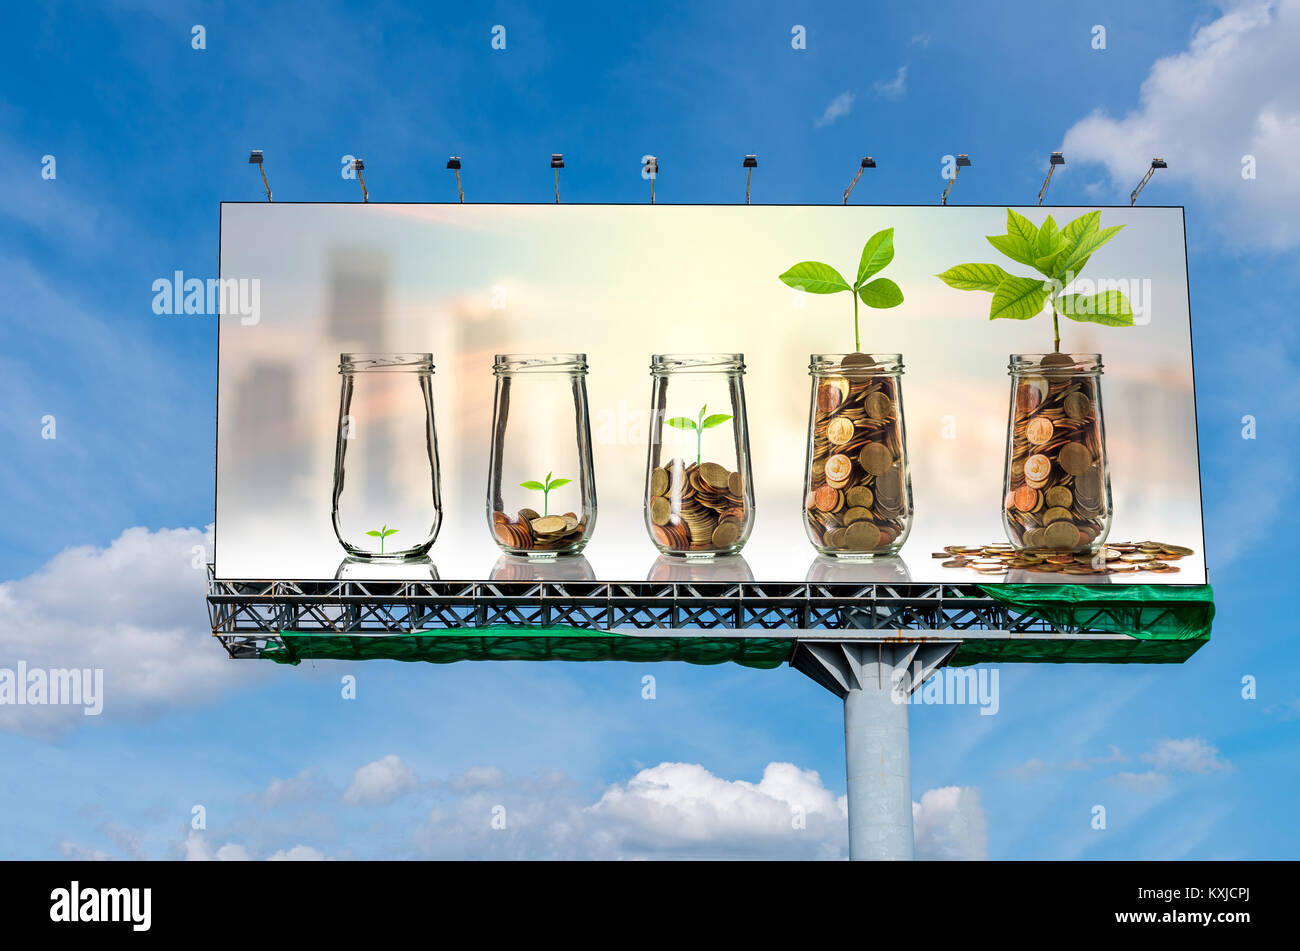 Billboard on beautiful sky showing the Gold coins and seed in clear bottle on cityscape photo blurred cityscape - Stock Image